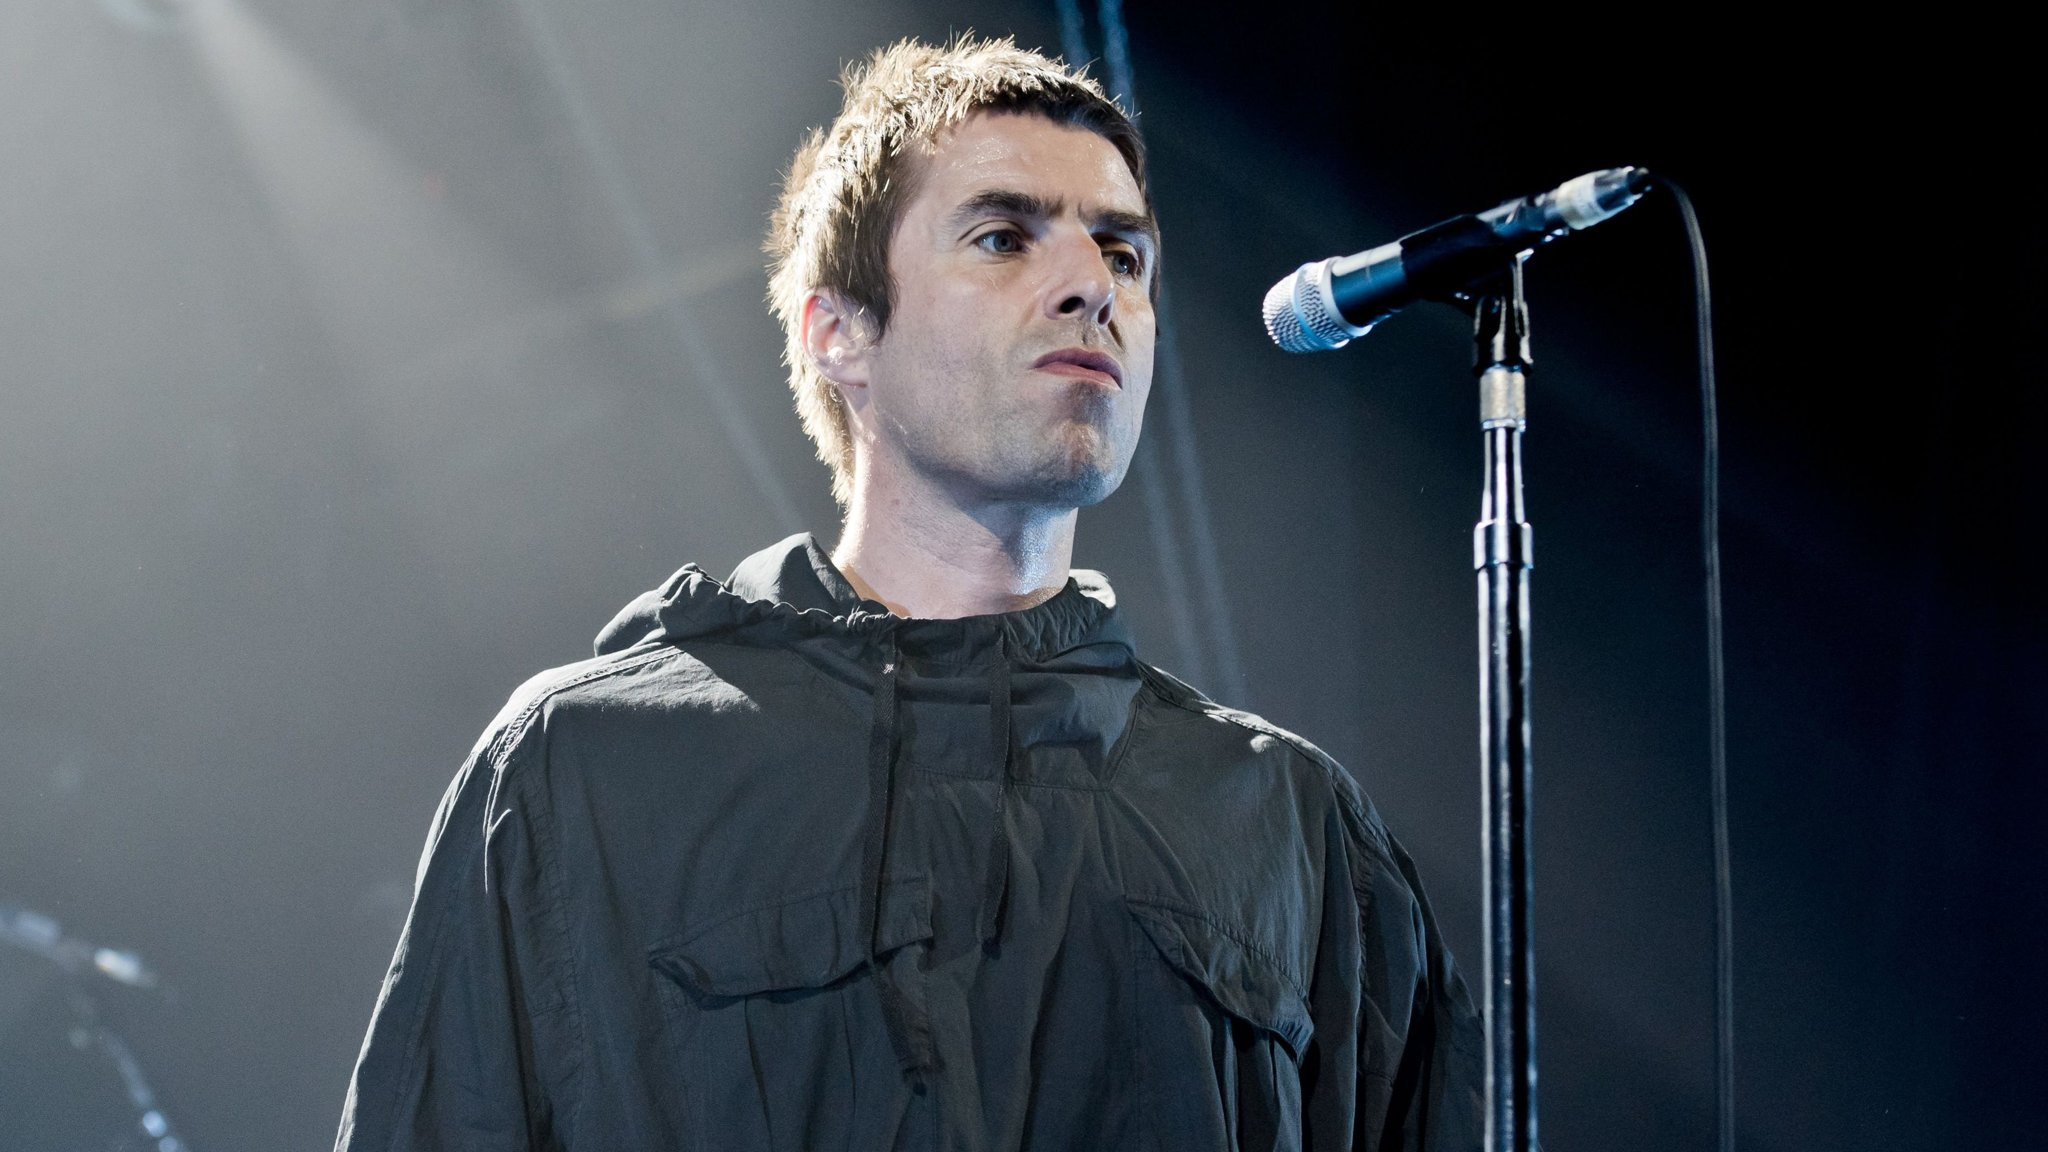 Liam Gallagher Electric Brixton London Forceful Financial Times